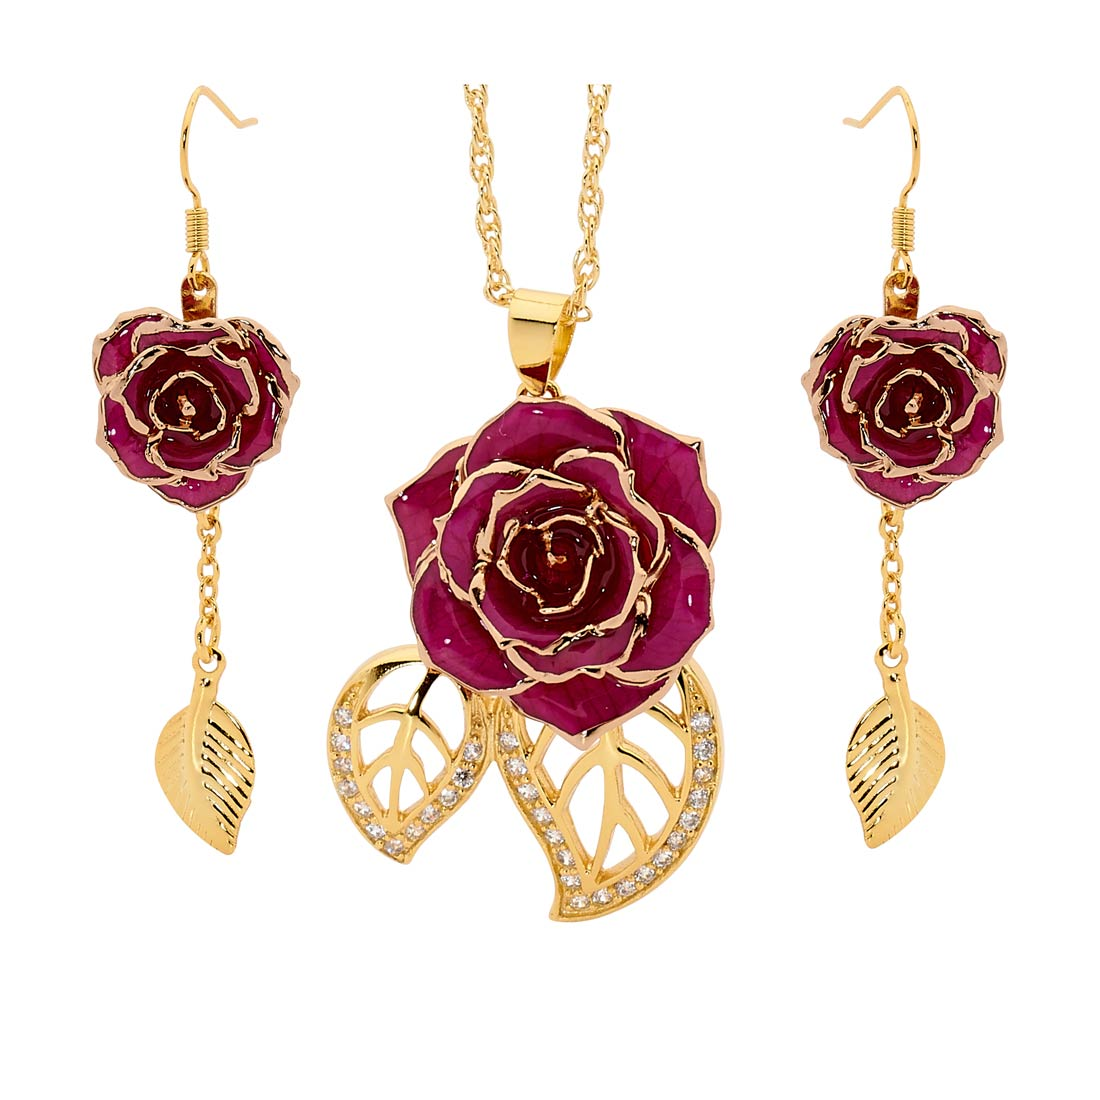 UK Women Filigree Leaf Necklace Earrings Set Chain Pendant Silver Gold Plated